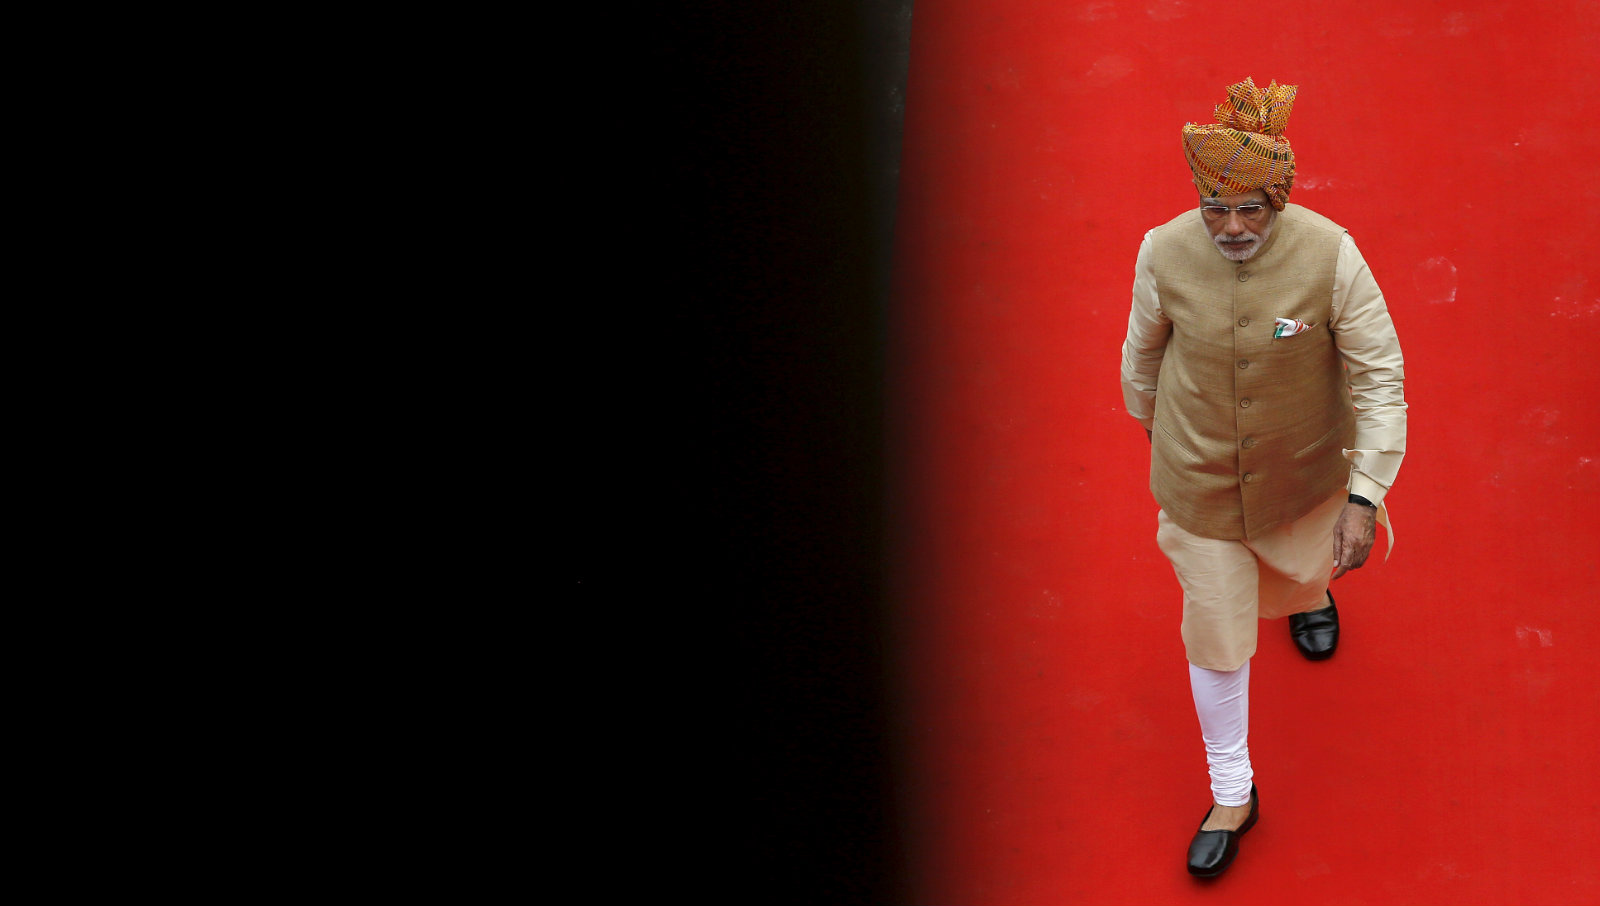 Indian Prime Minister Narendra Modi arrives to address the nation from the historic Red Fort during Independence Day celebrations in Delhi, India, August 15, 2015. Modi sought to shed an image that he governs for big business on Saturday, vowing to help the poor in an annual speech aimed at bolstering popularity rather than tackling setbacks to his economic reform plans.